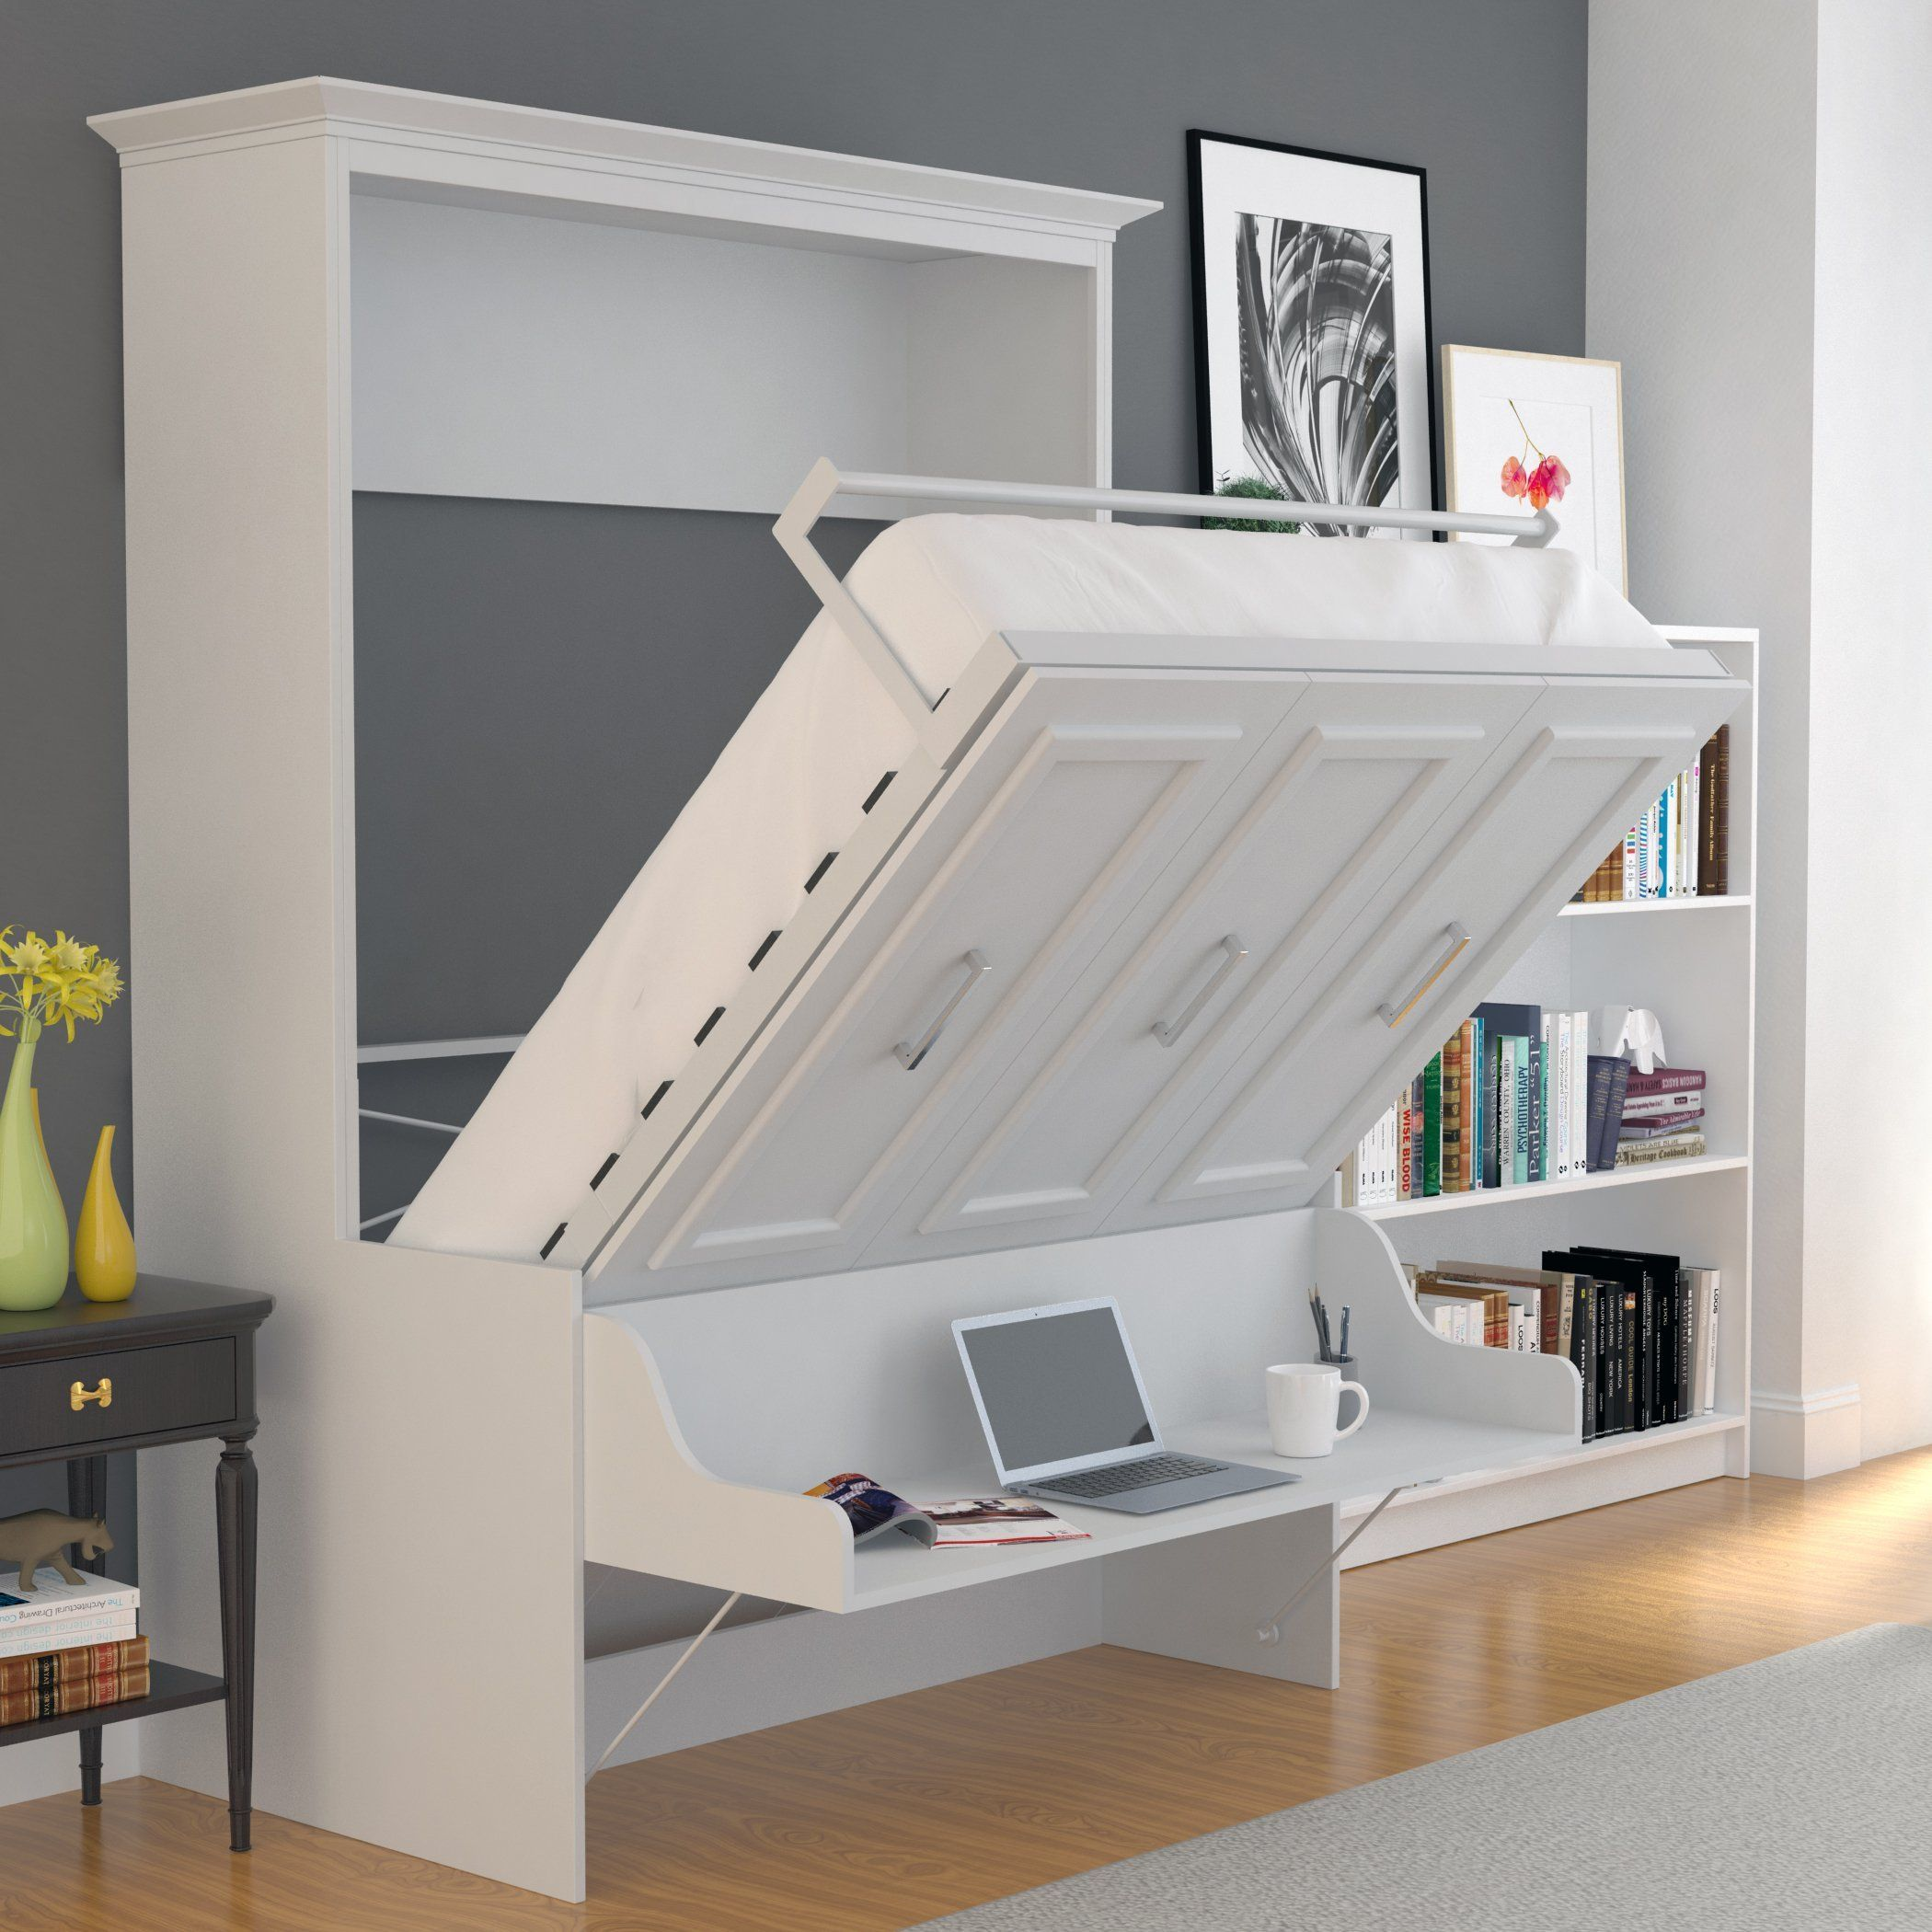 Queen Murphy Bed With Desk Shop for beautiful, white